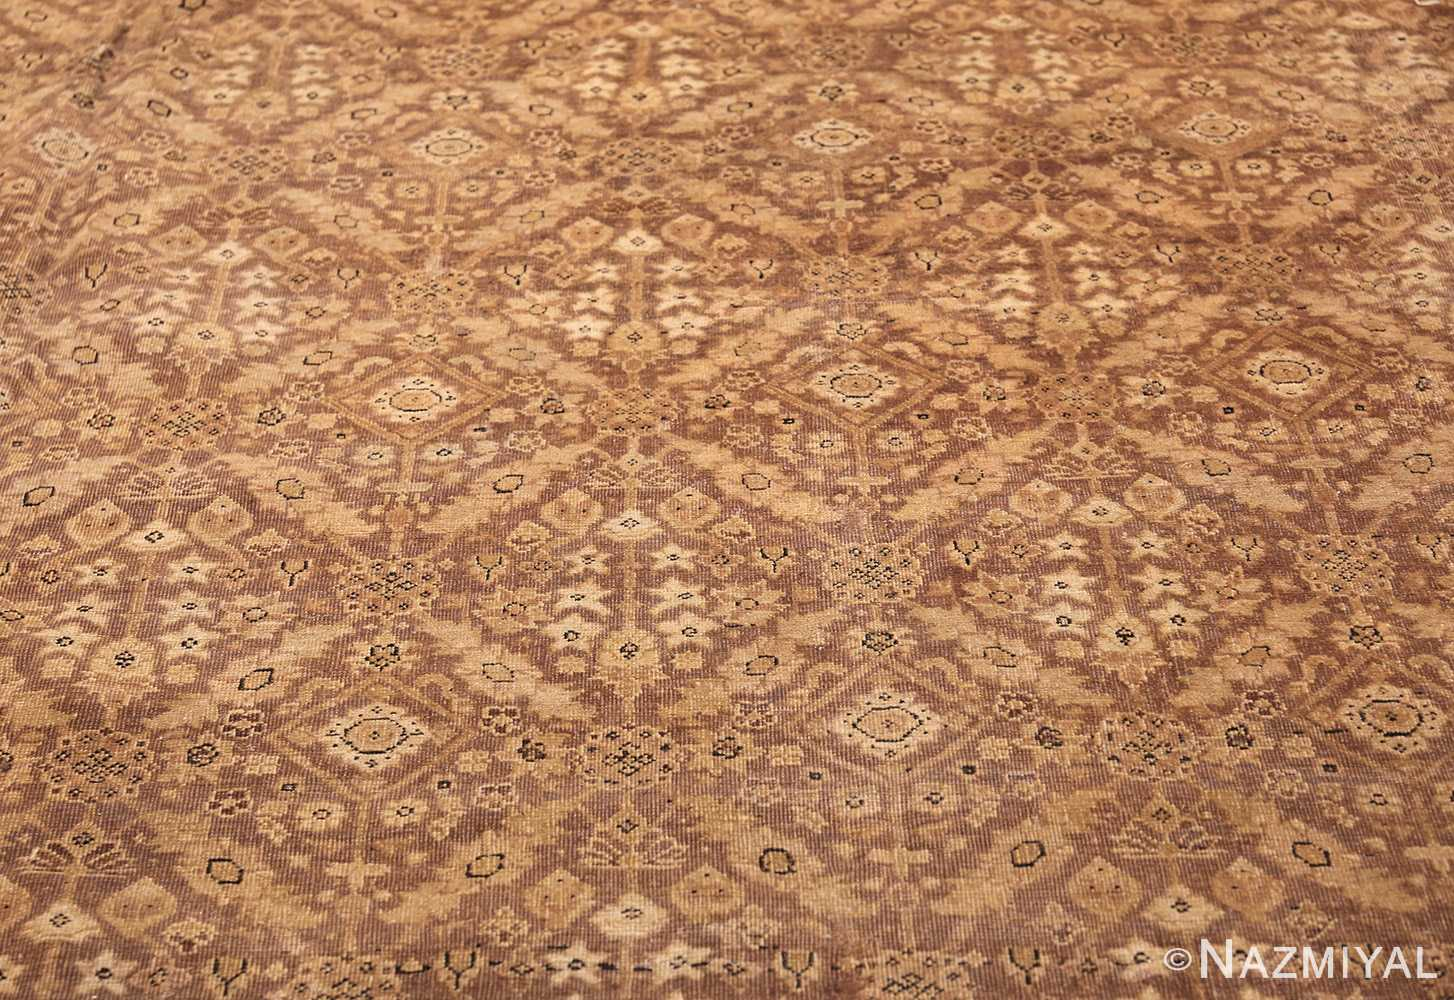 all over design antique indian amritsar rug 50455 field Nazmiyal